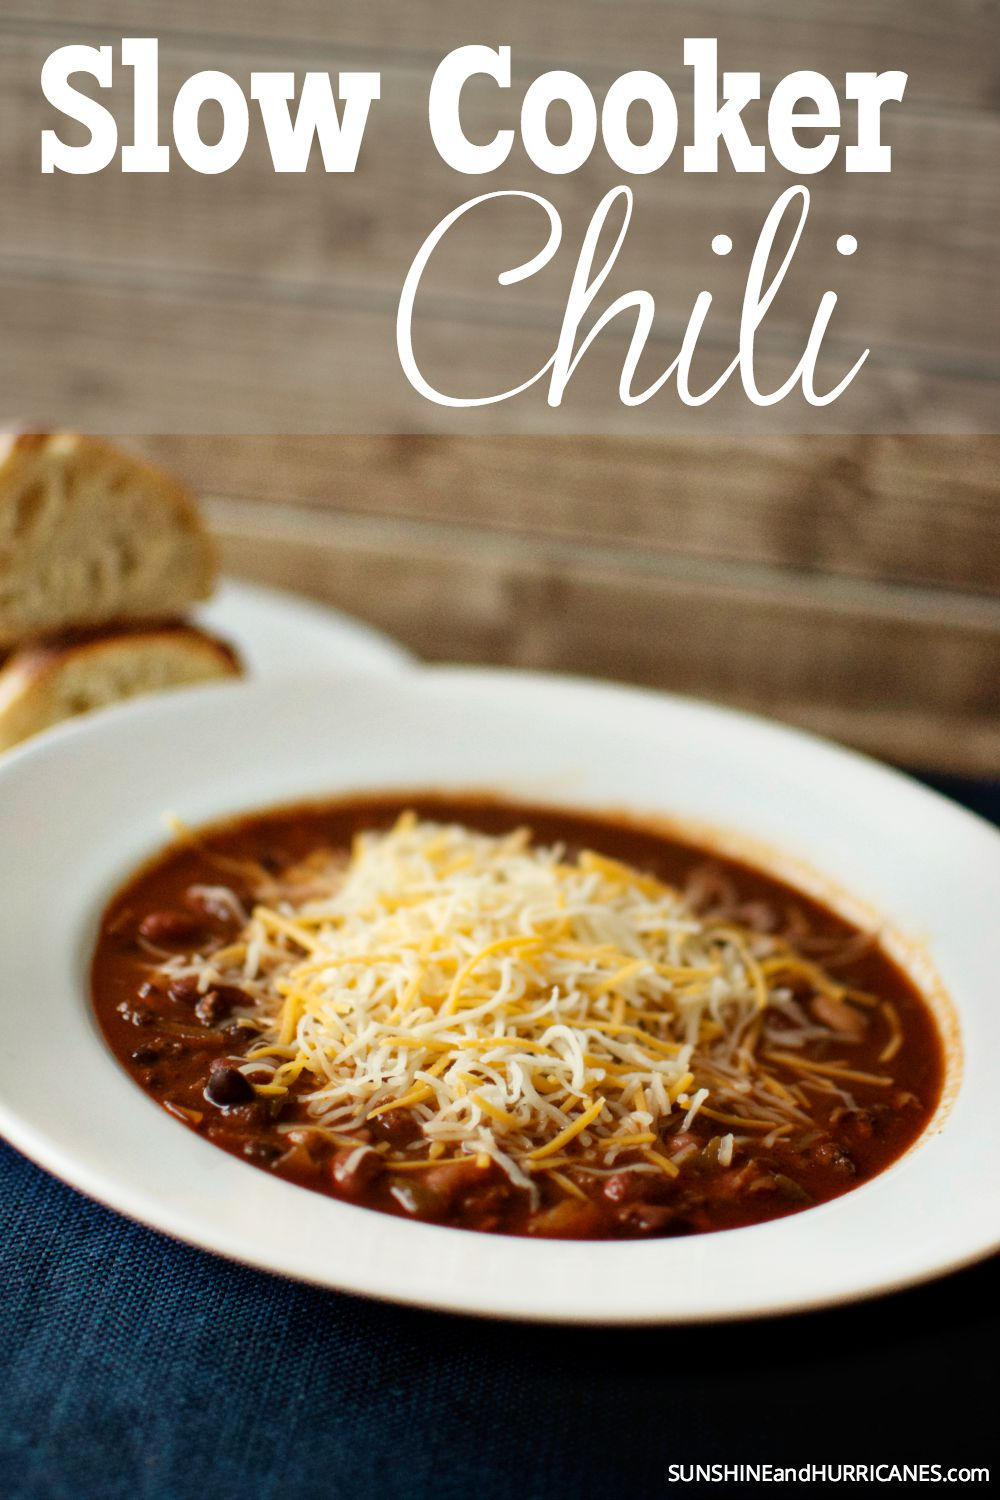 Looking for a delicious and easy meal for dinner or a game day celebration? This slow cooker chili is a tasty option that will please a crowd or even your pickiest little eater. Slow Cooker Chili. SunshineandHurrcanes.com